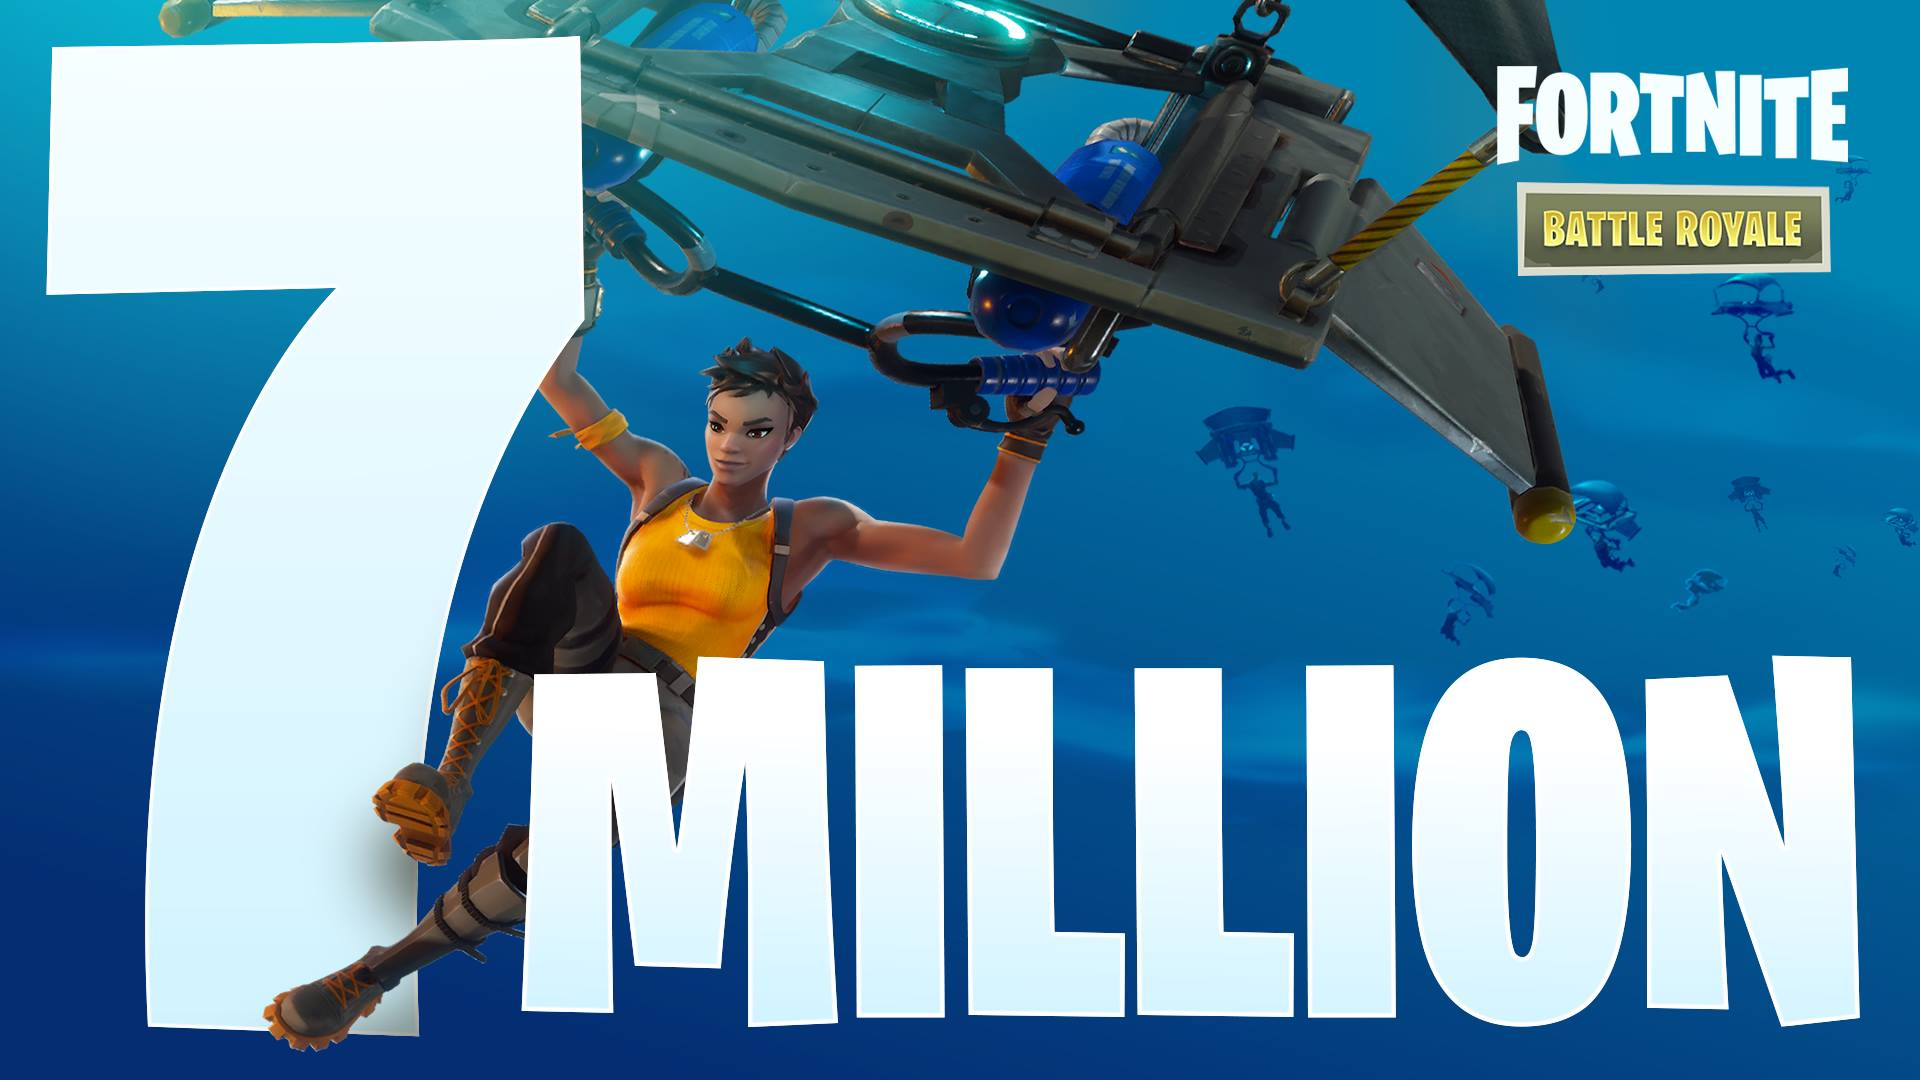 Fortnite has over 7 million players